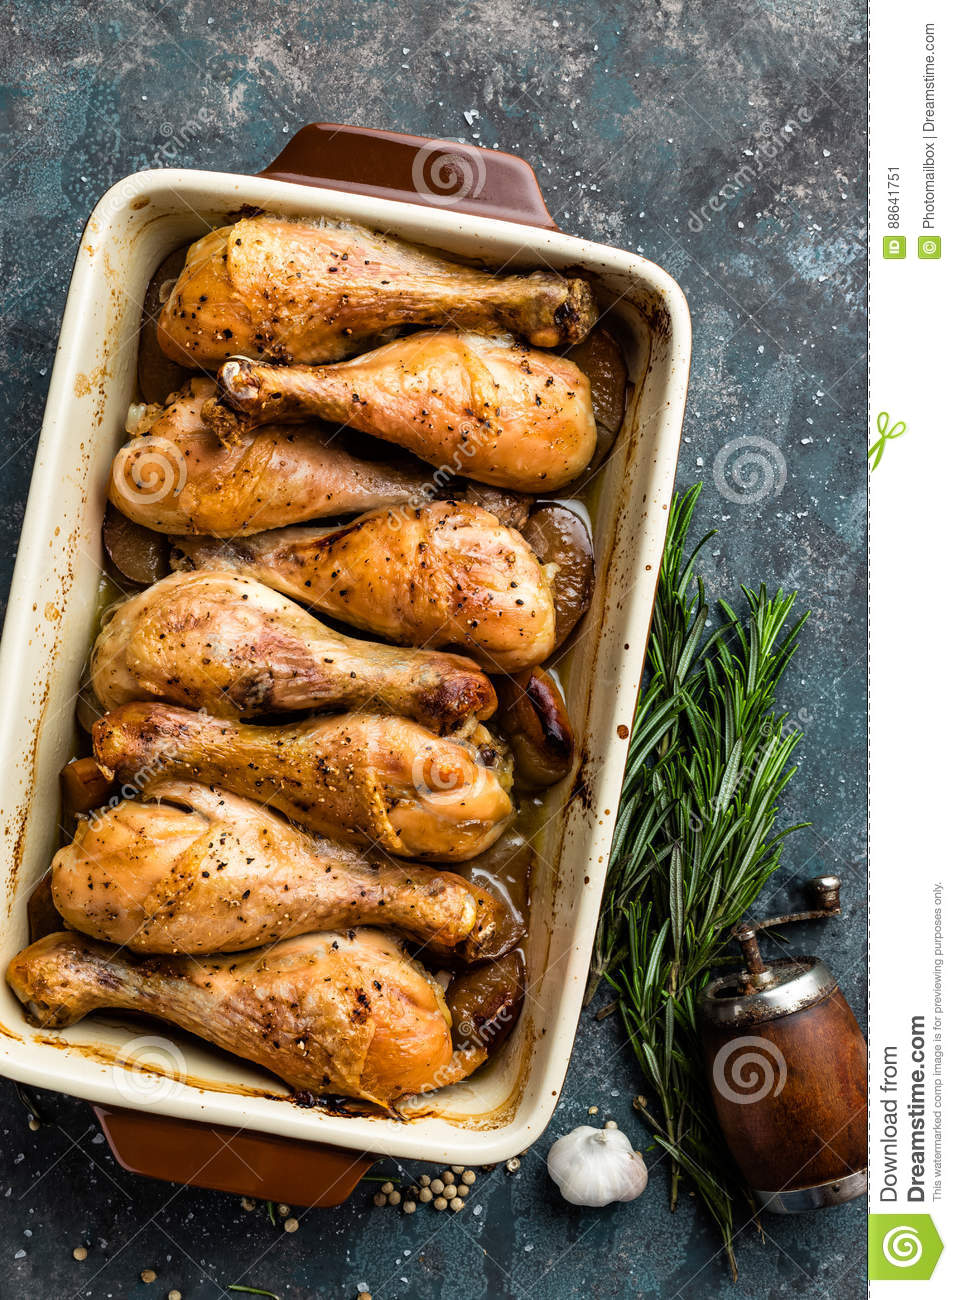 how to prepare chicken drumsticks for cooking